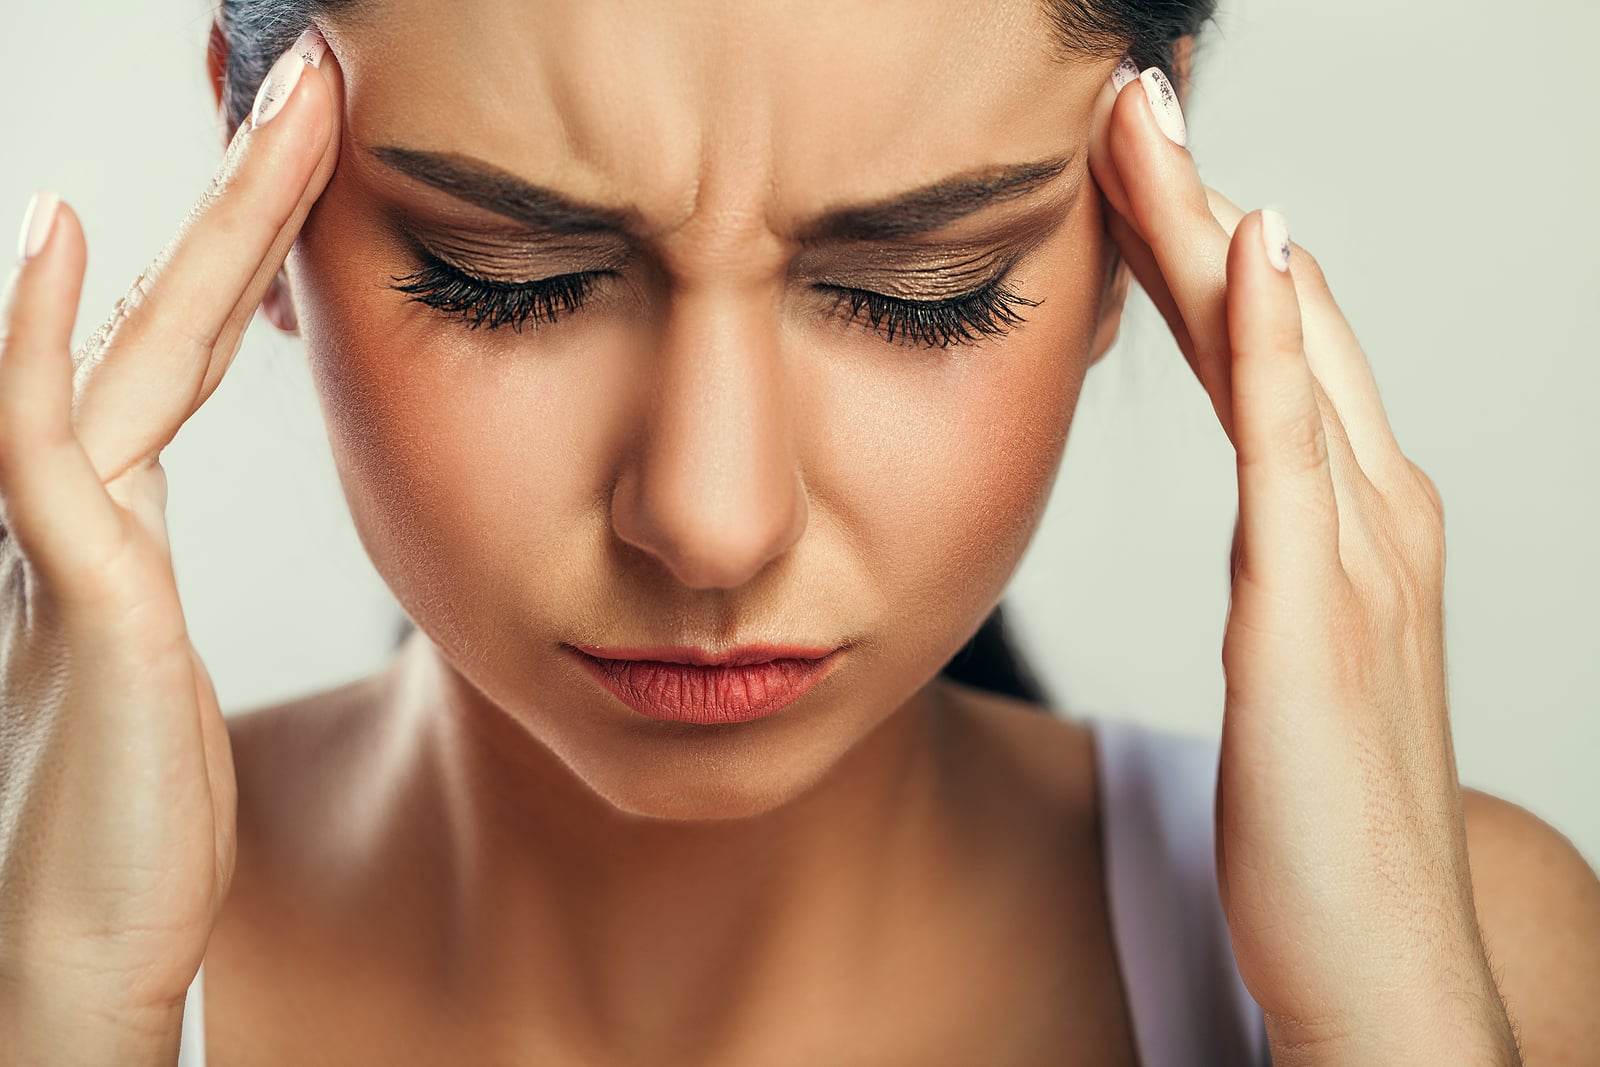 Melatonin for migraines